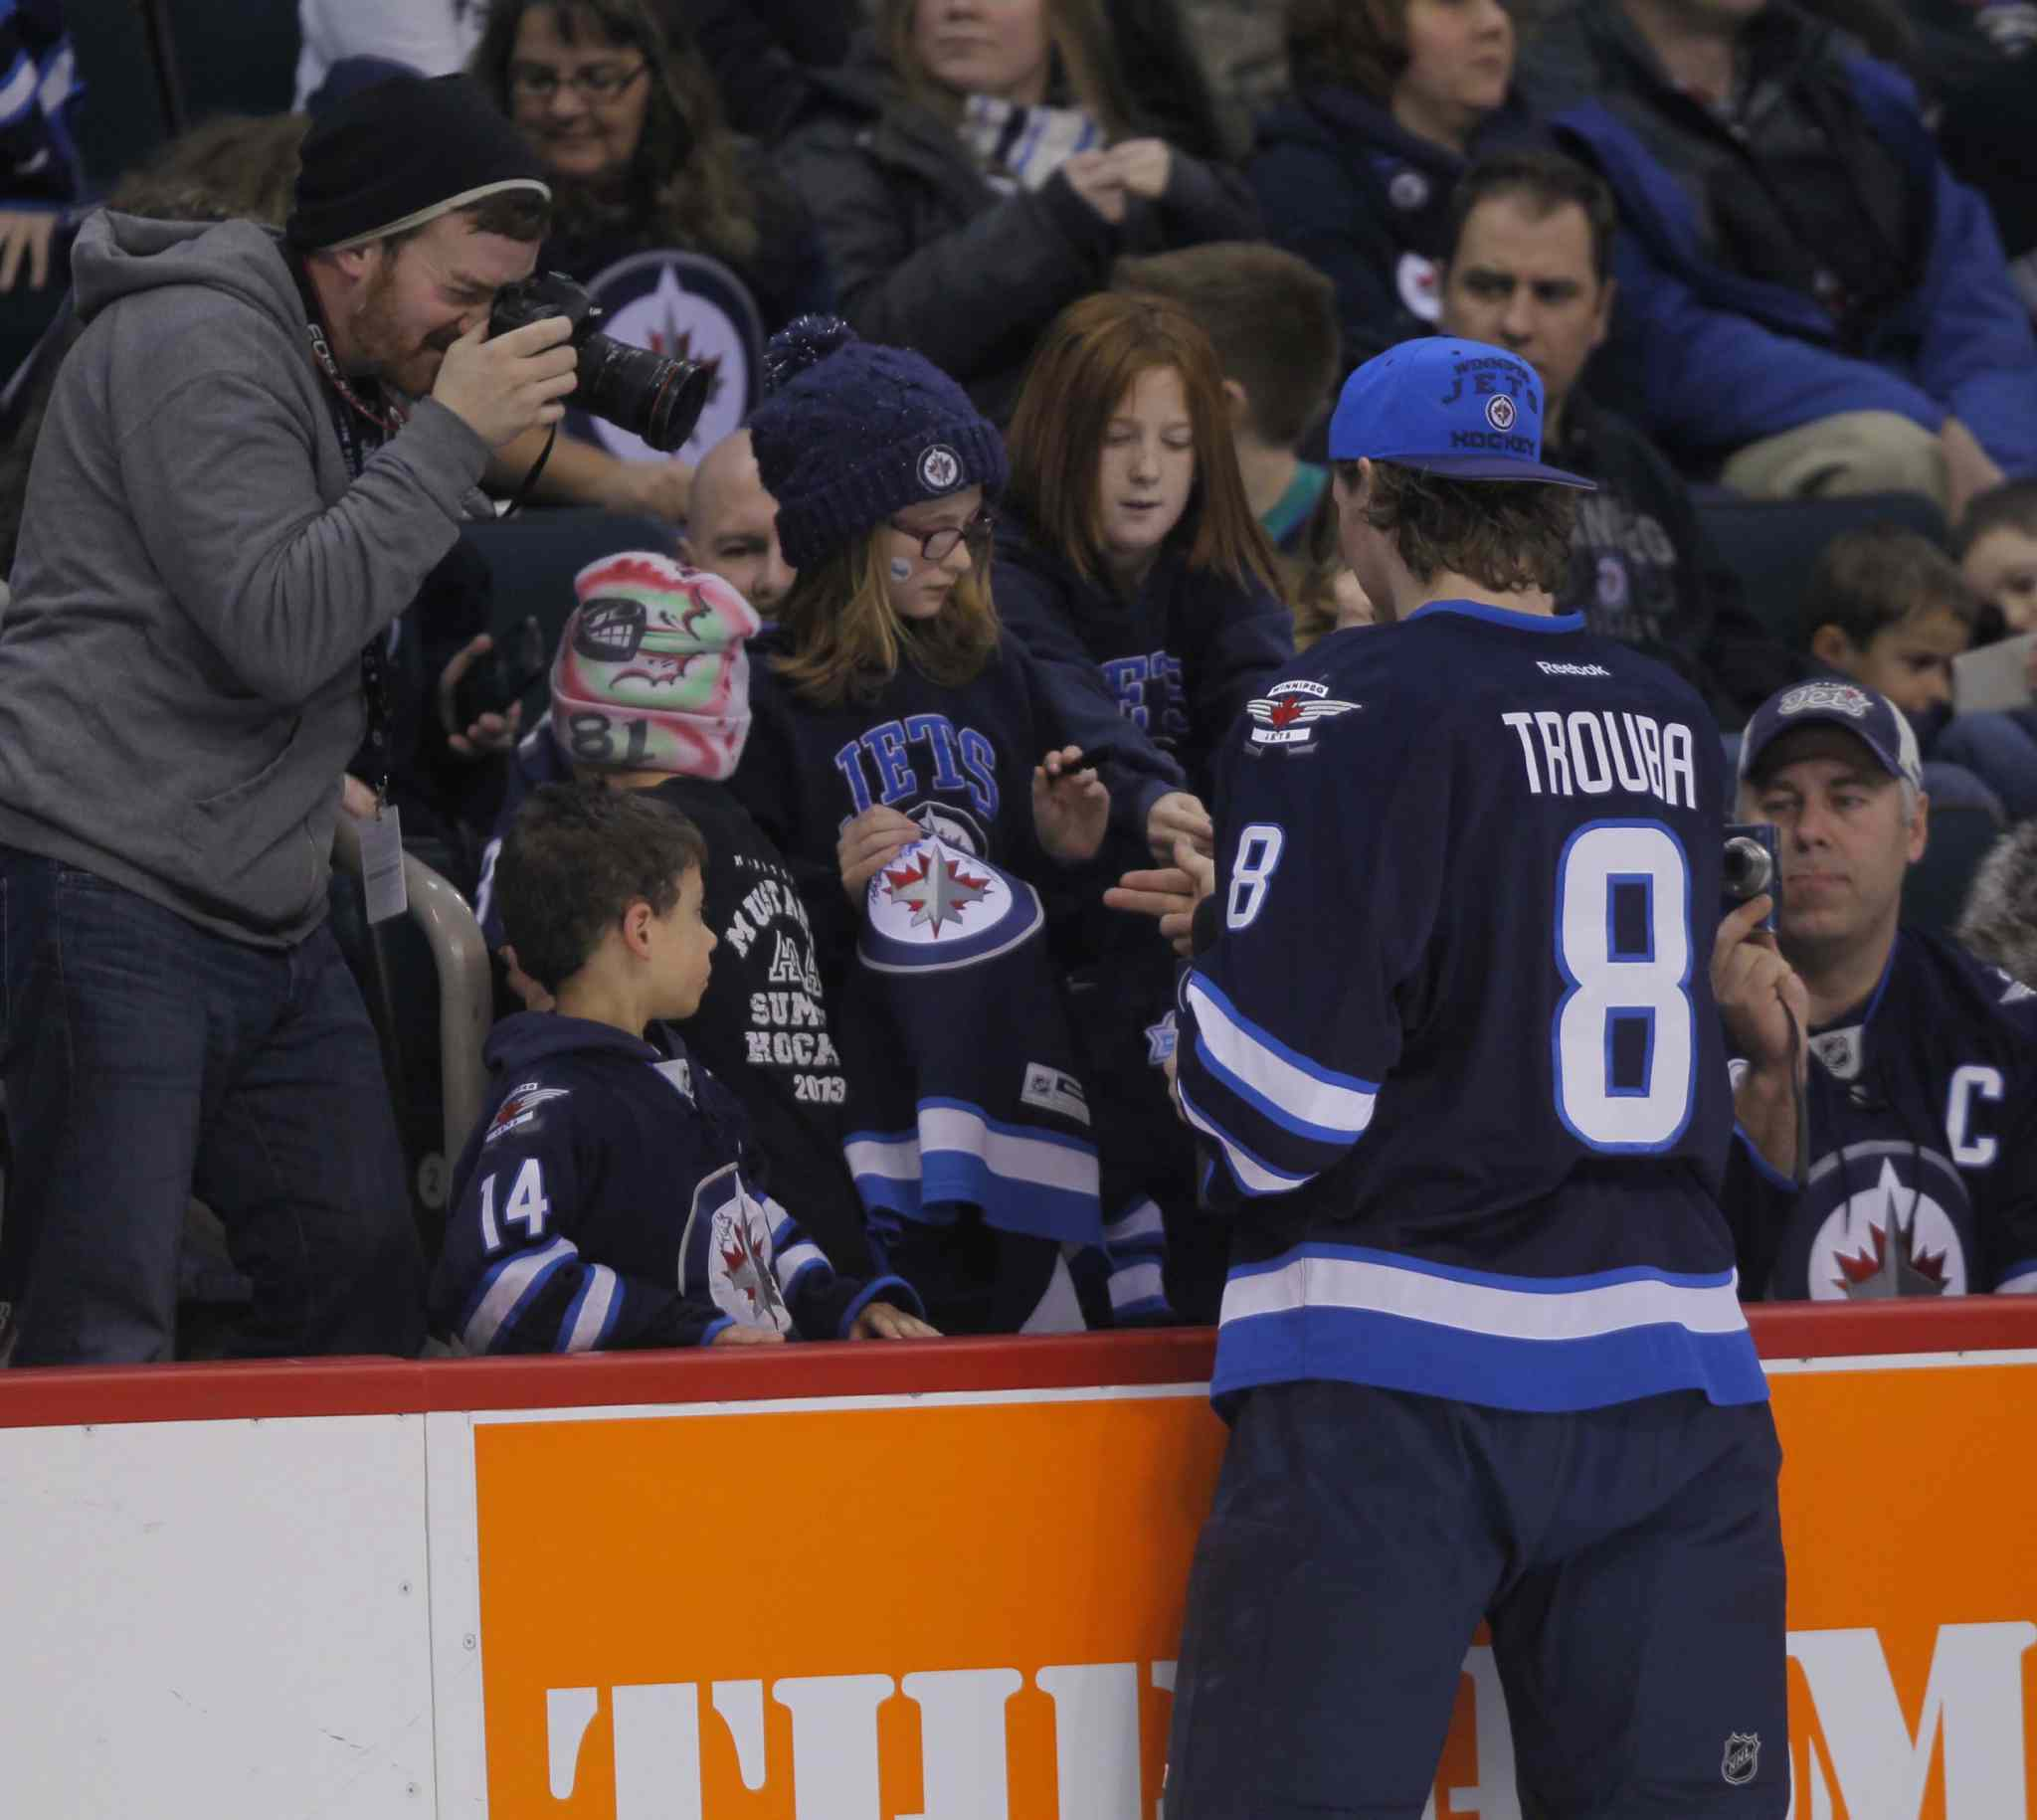 Jacob Trouba signs some autographs.